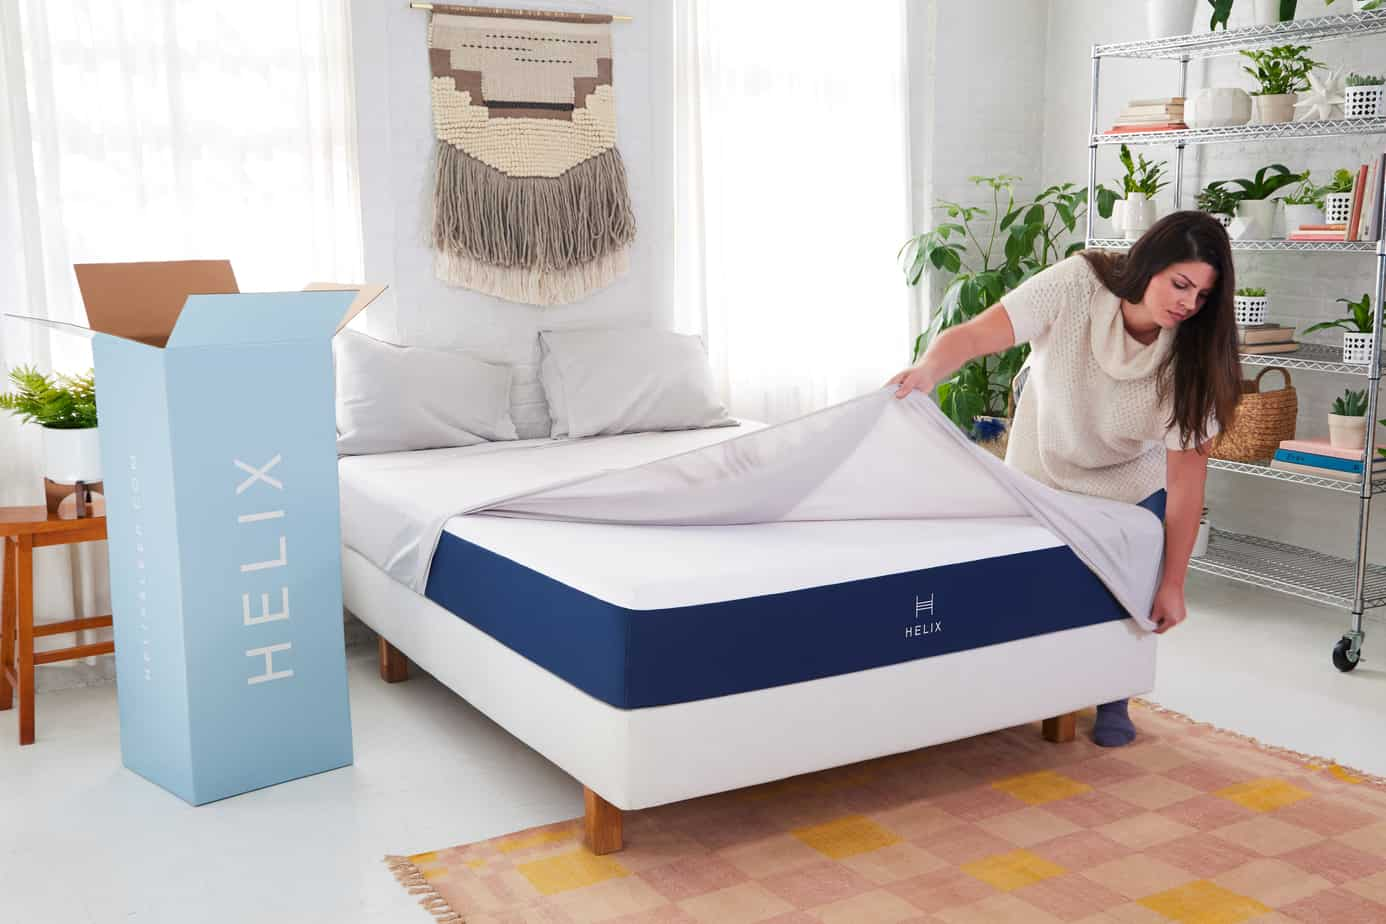 Helix Vs Loom And Leaf Helix Lifestyle 2 2695 1 Sleep Delivered